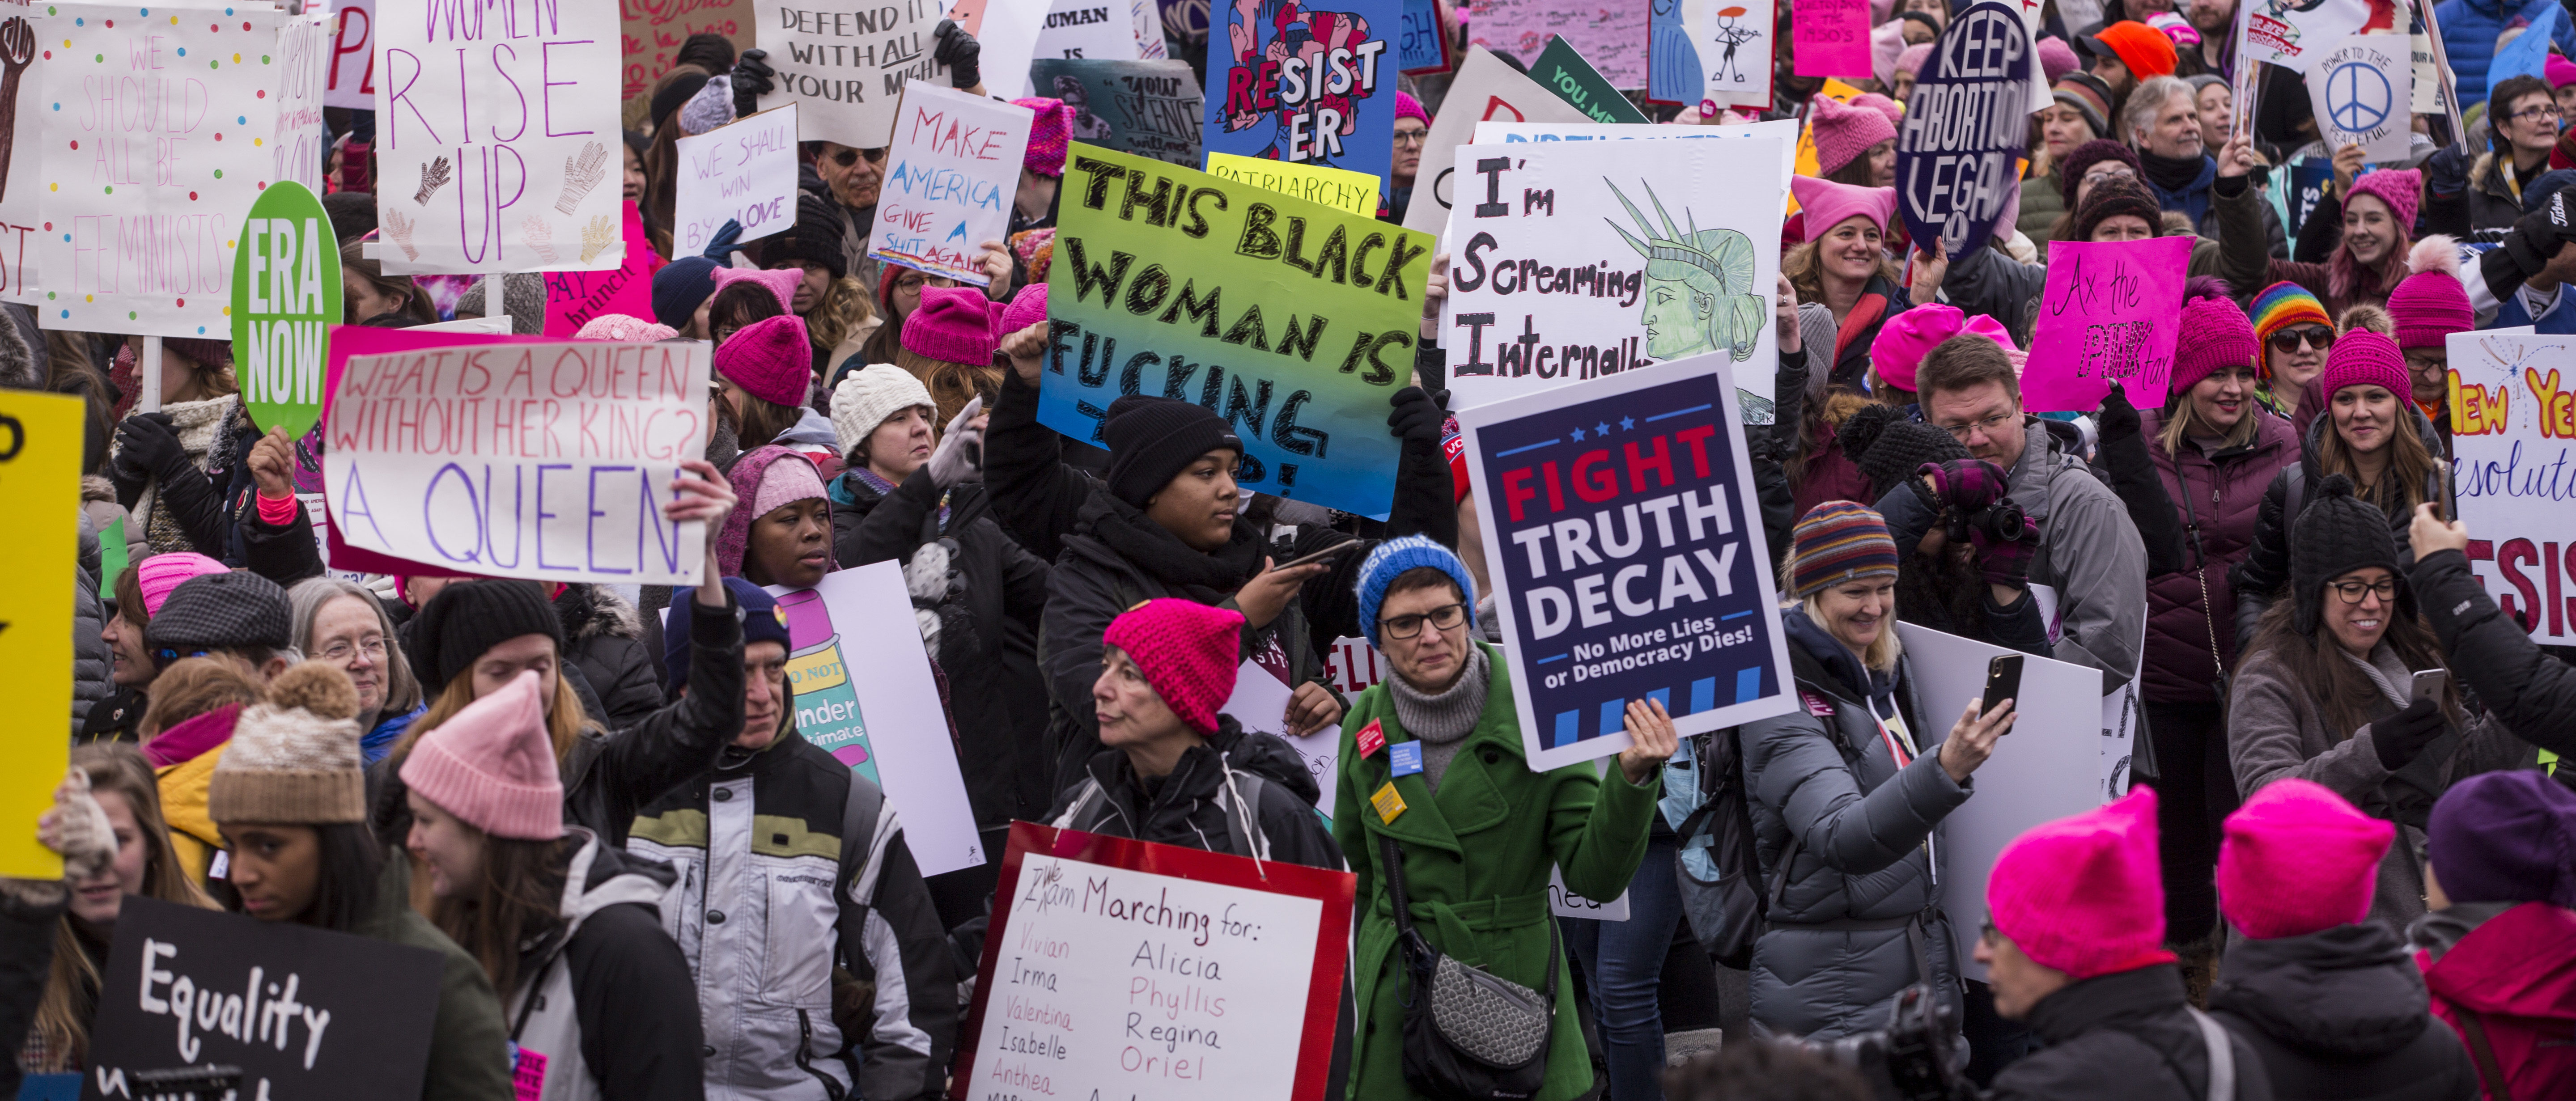 WASHINGTON, DC - JANUARY 19: Demonstrators hold signs during the 2019 Women's March on January 19, 2019 in Washington, DC. Demonstrations are slated to take place in cities across the country in the third annual event aimed to highlight social change and celebrate women's rights around the world. (Photo by Zach Gibson/Getty Images)